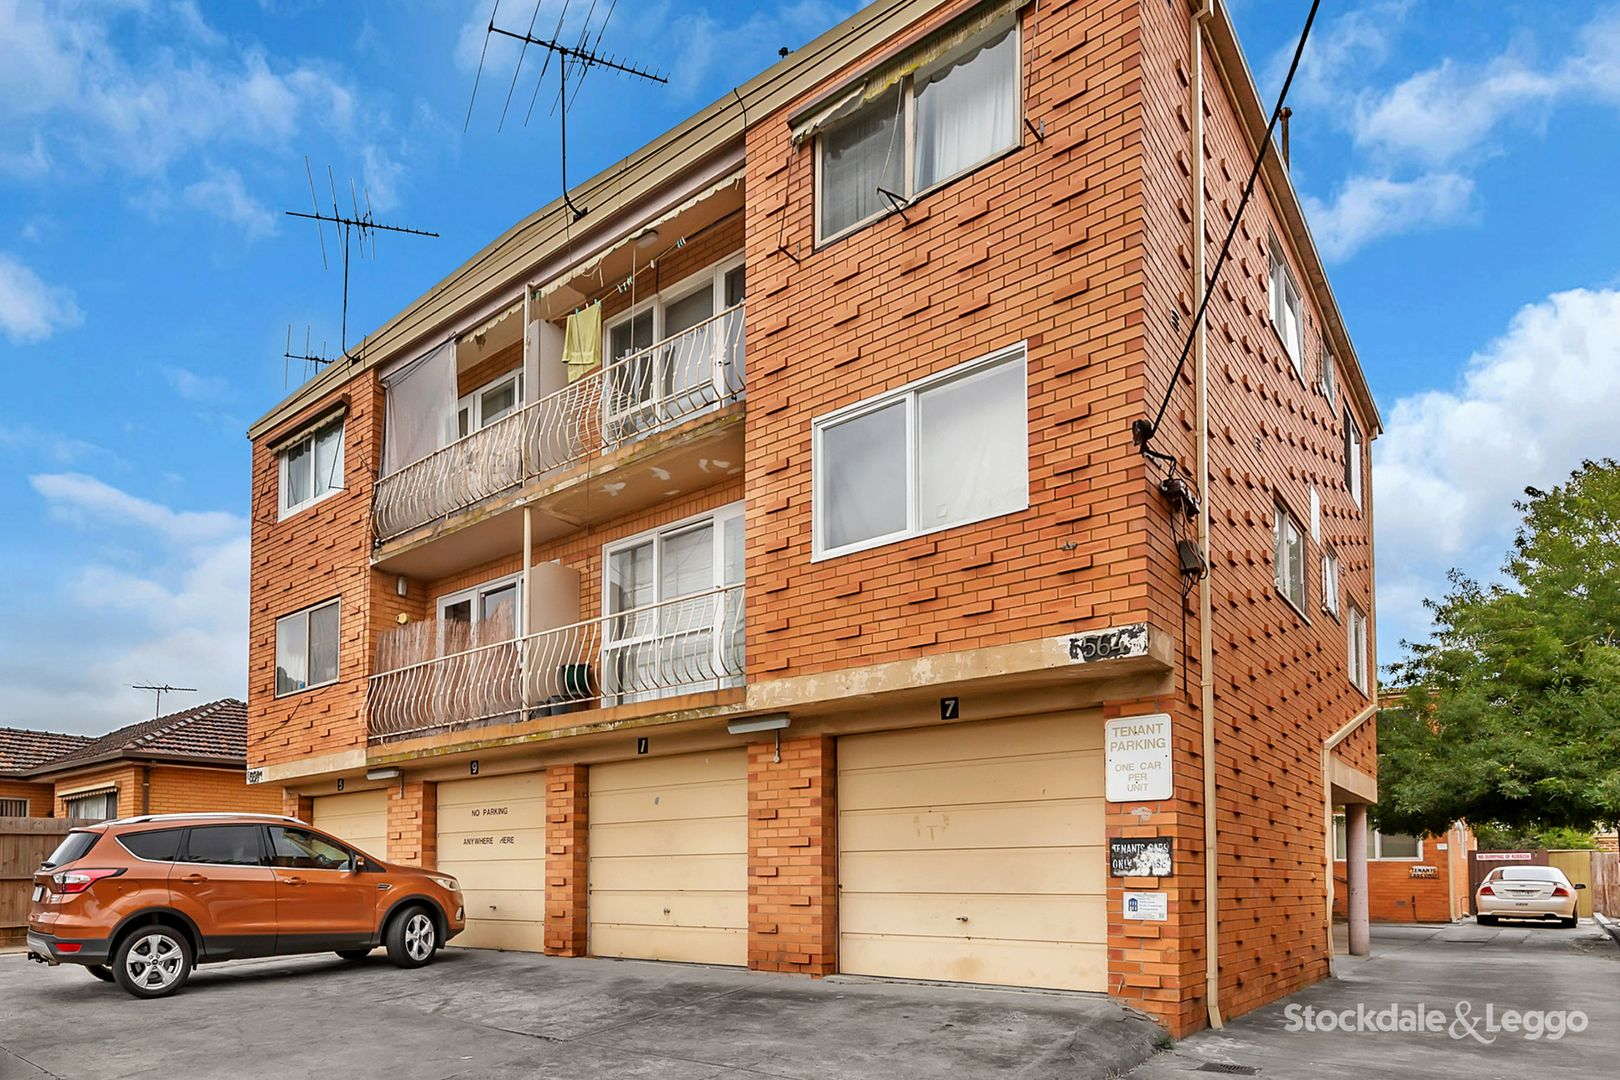 2/564 Pascoe Vale Road, Pascoe Vale VIC 3044, Image 0